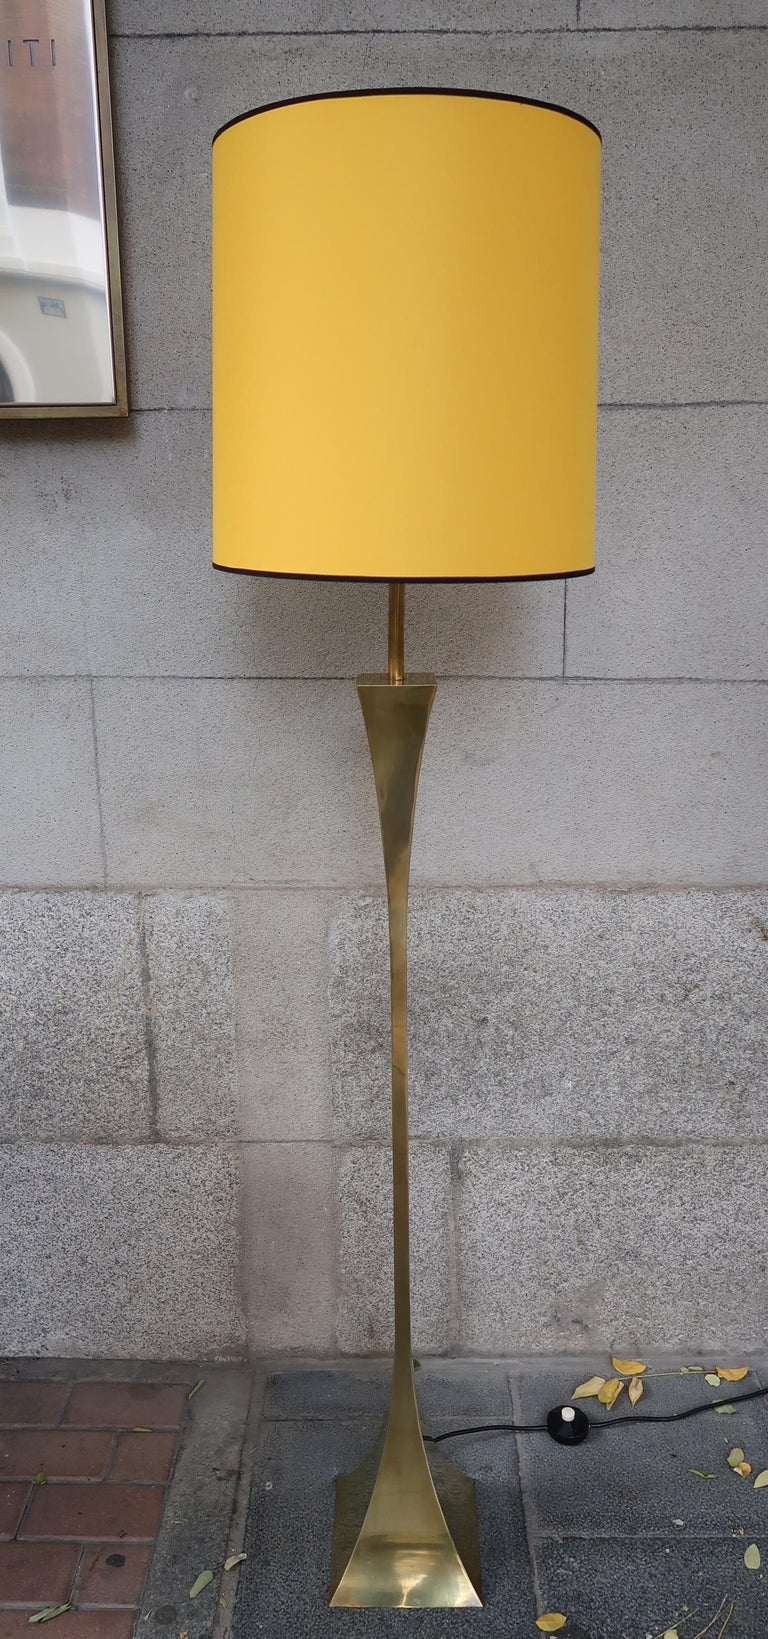 Montagna Grillo, Mod. Pyramid, Brass Midcentury Floor Lamp, Italy, 1970 In Good Condition For Sale In Madrid, ES